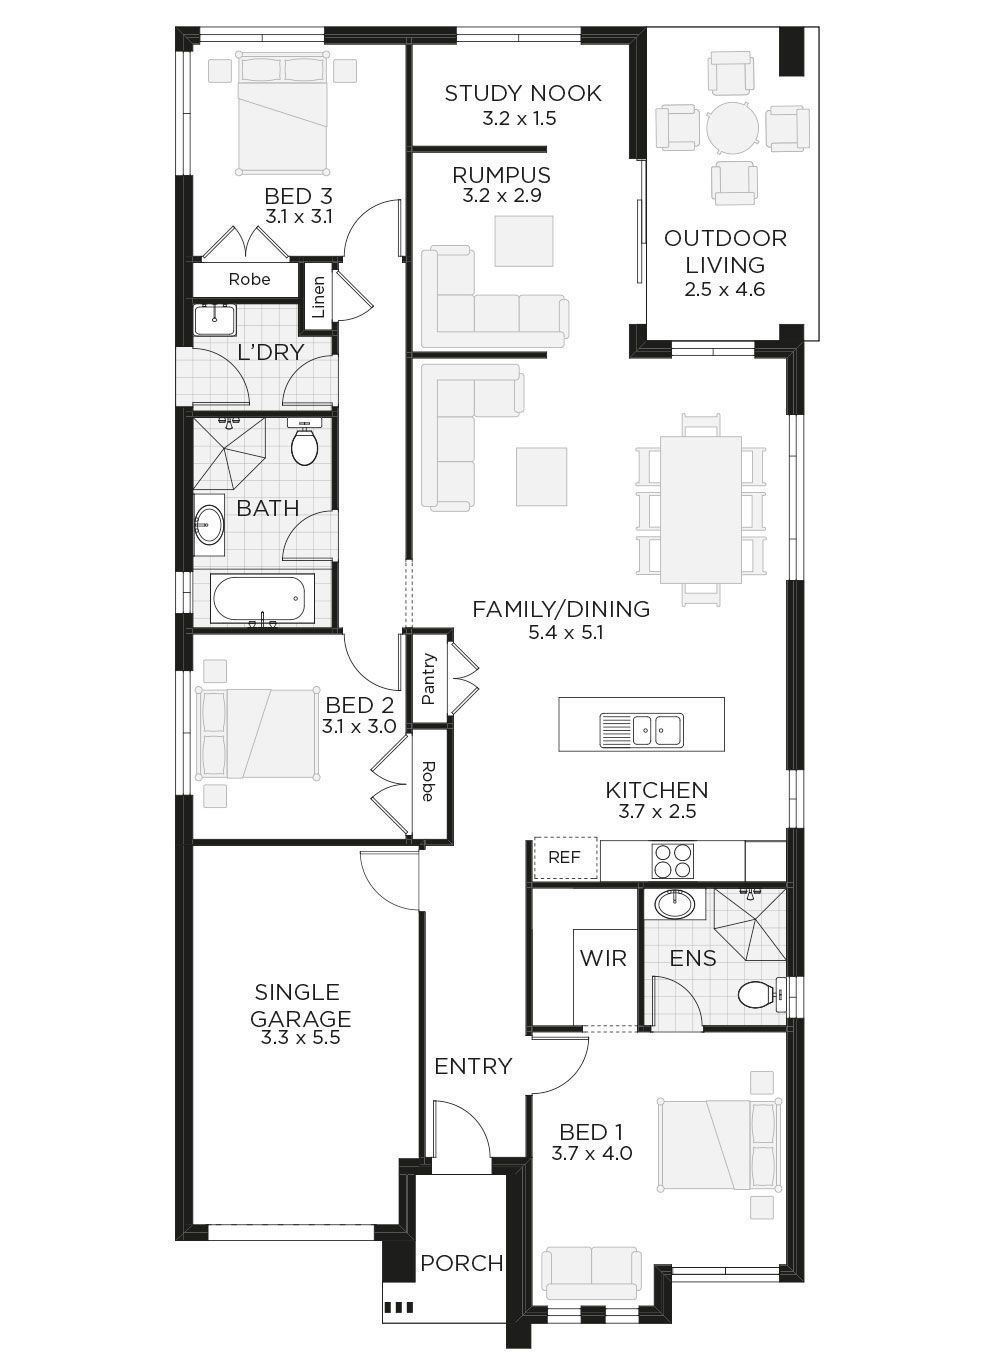 San Remo Home Floor plans, House design, Walk in pantry